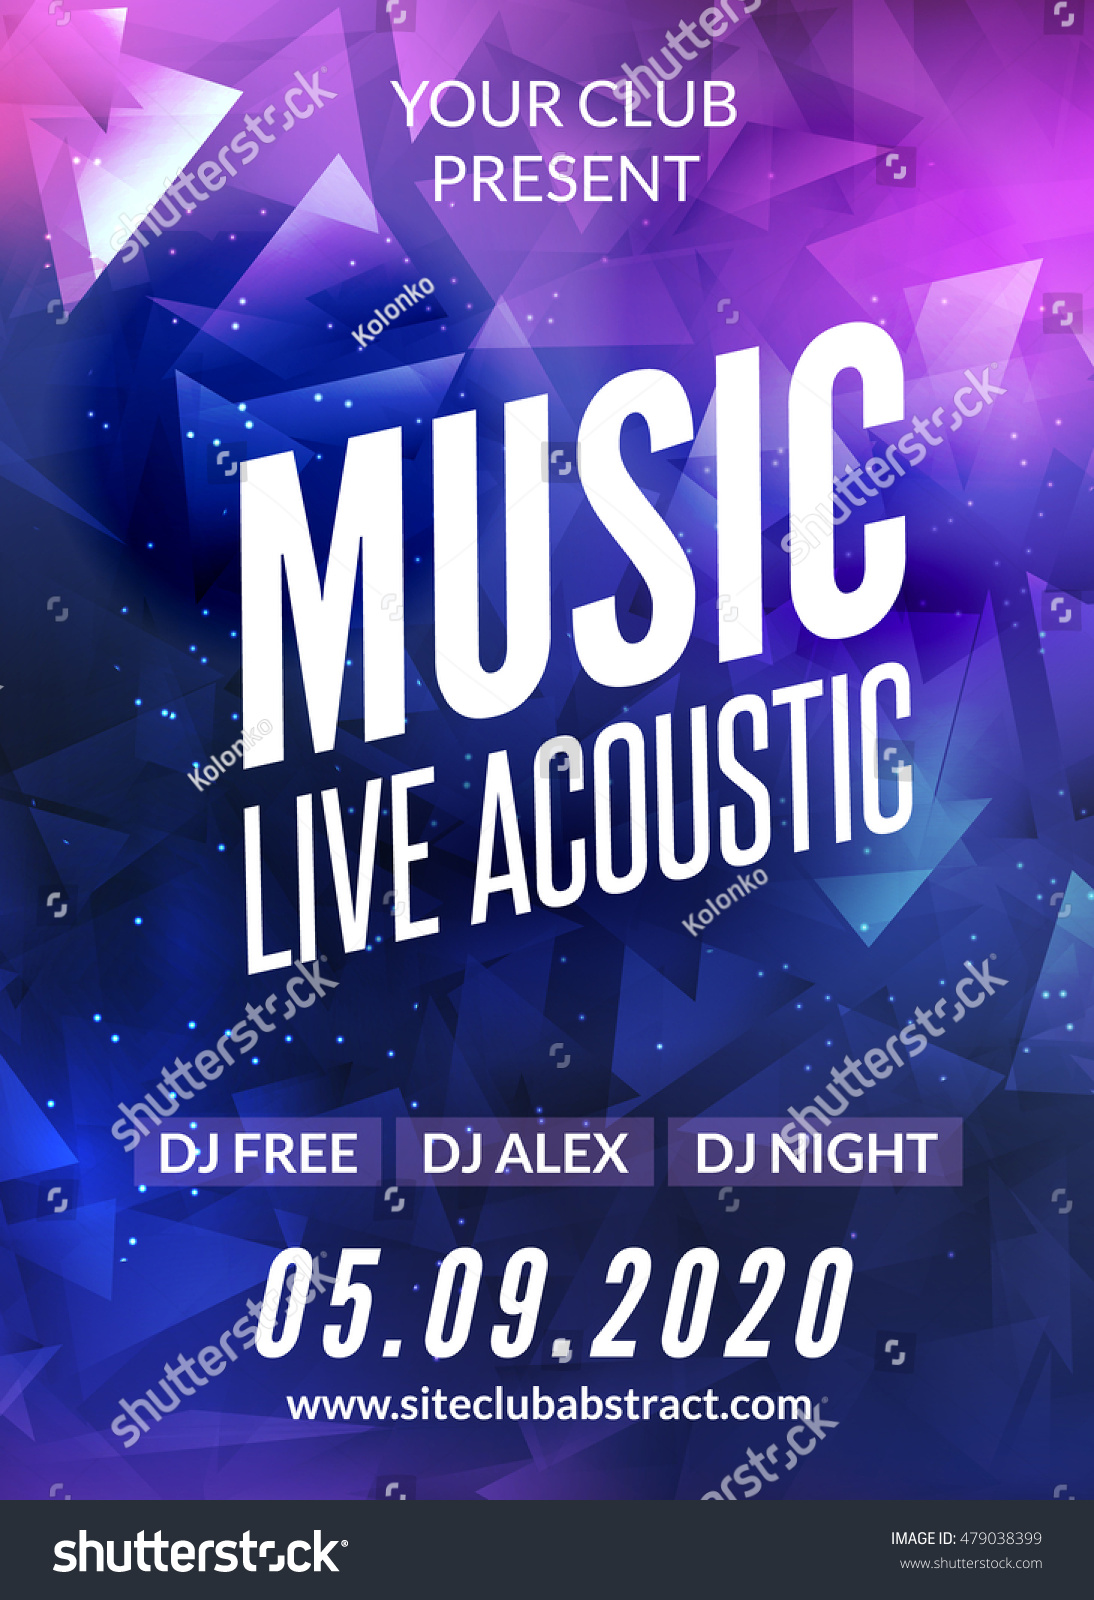 live music acoustic poster design temple stock vector  live music acoustic poster design temple live show modern party dj invitation flyer